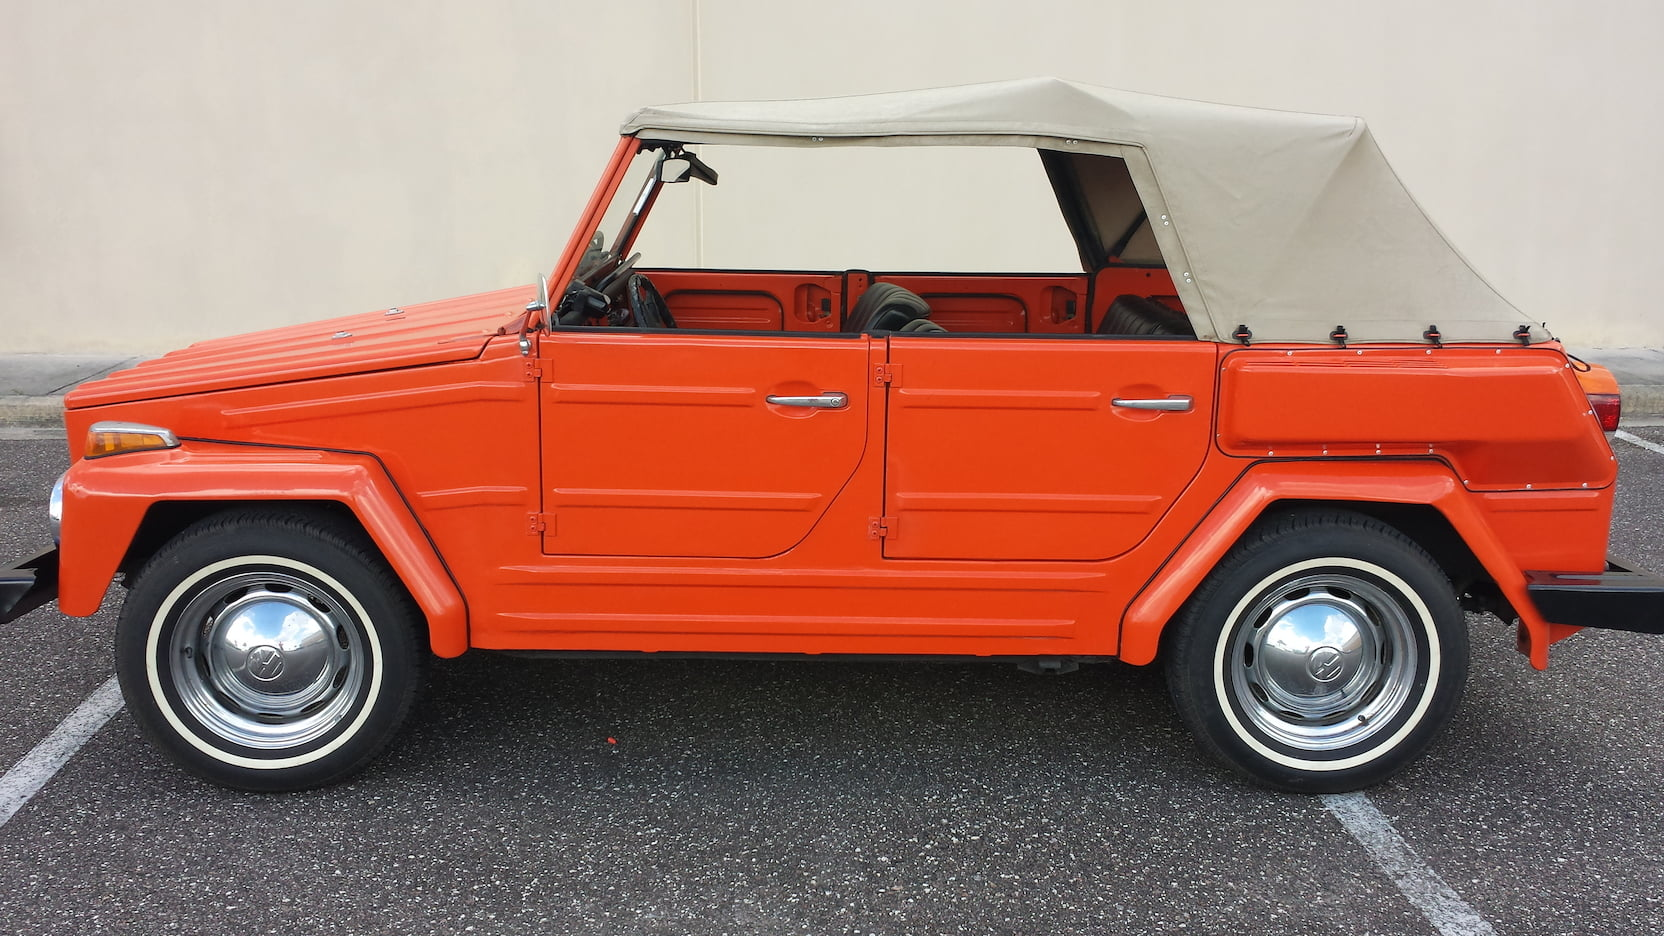 1974 Volkswagen Thing side